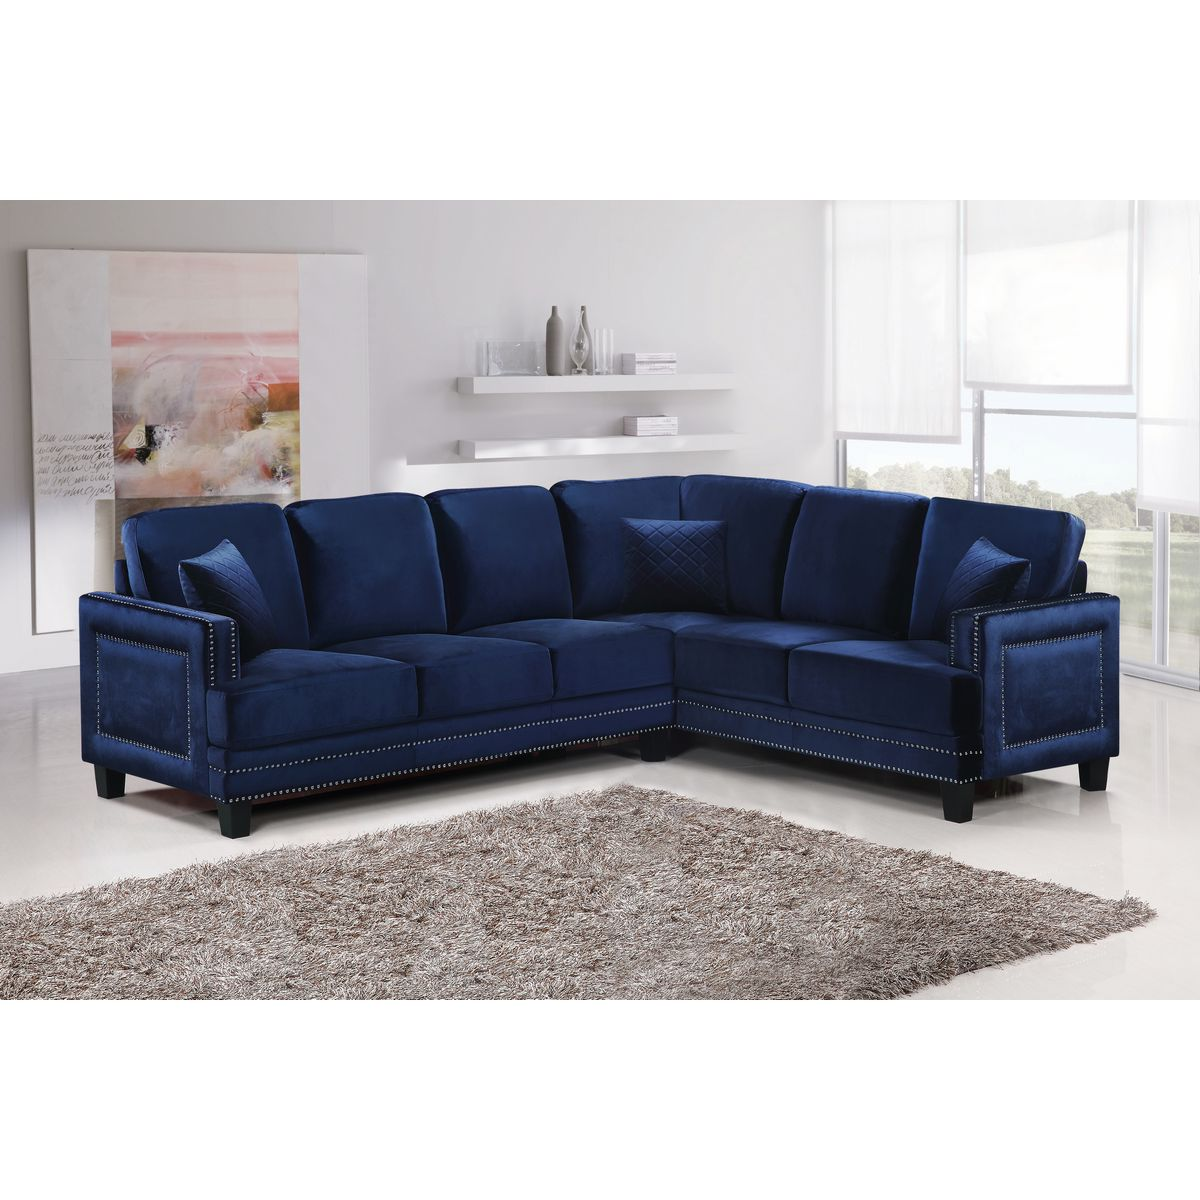 Sectional Sofa With Nailhead TrimL A Whole Furniture Glendale Arizona  Direct Web Link Http